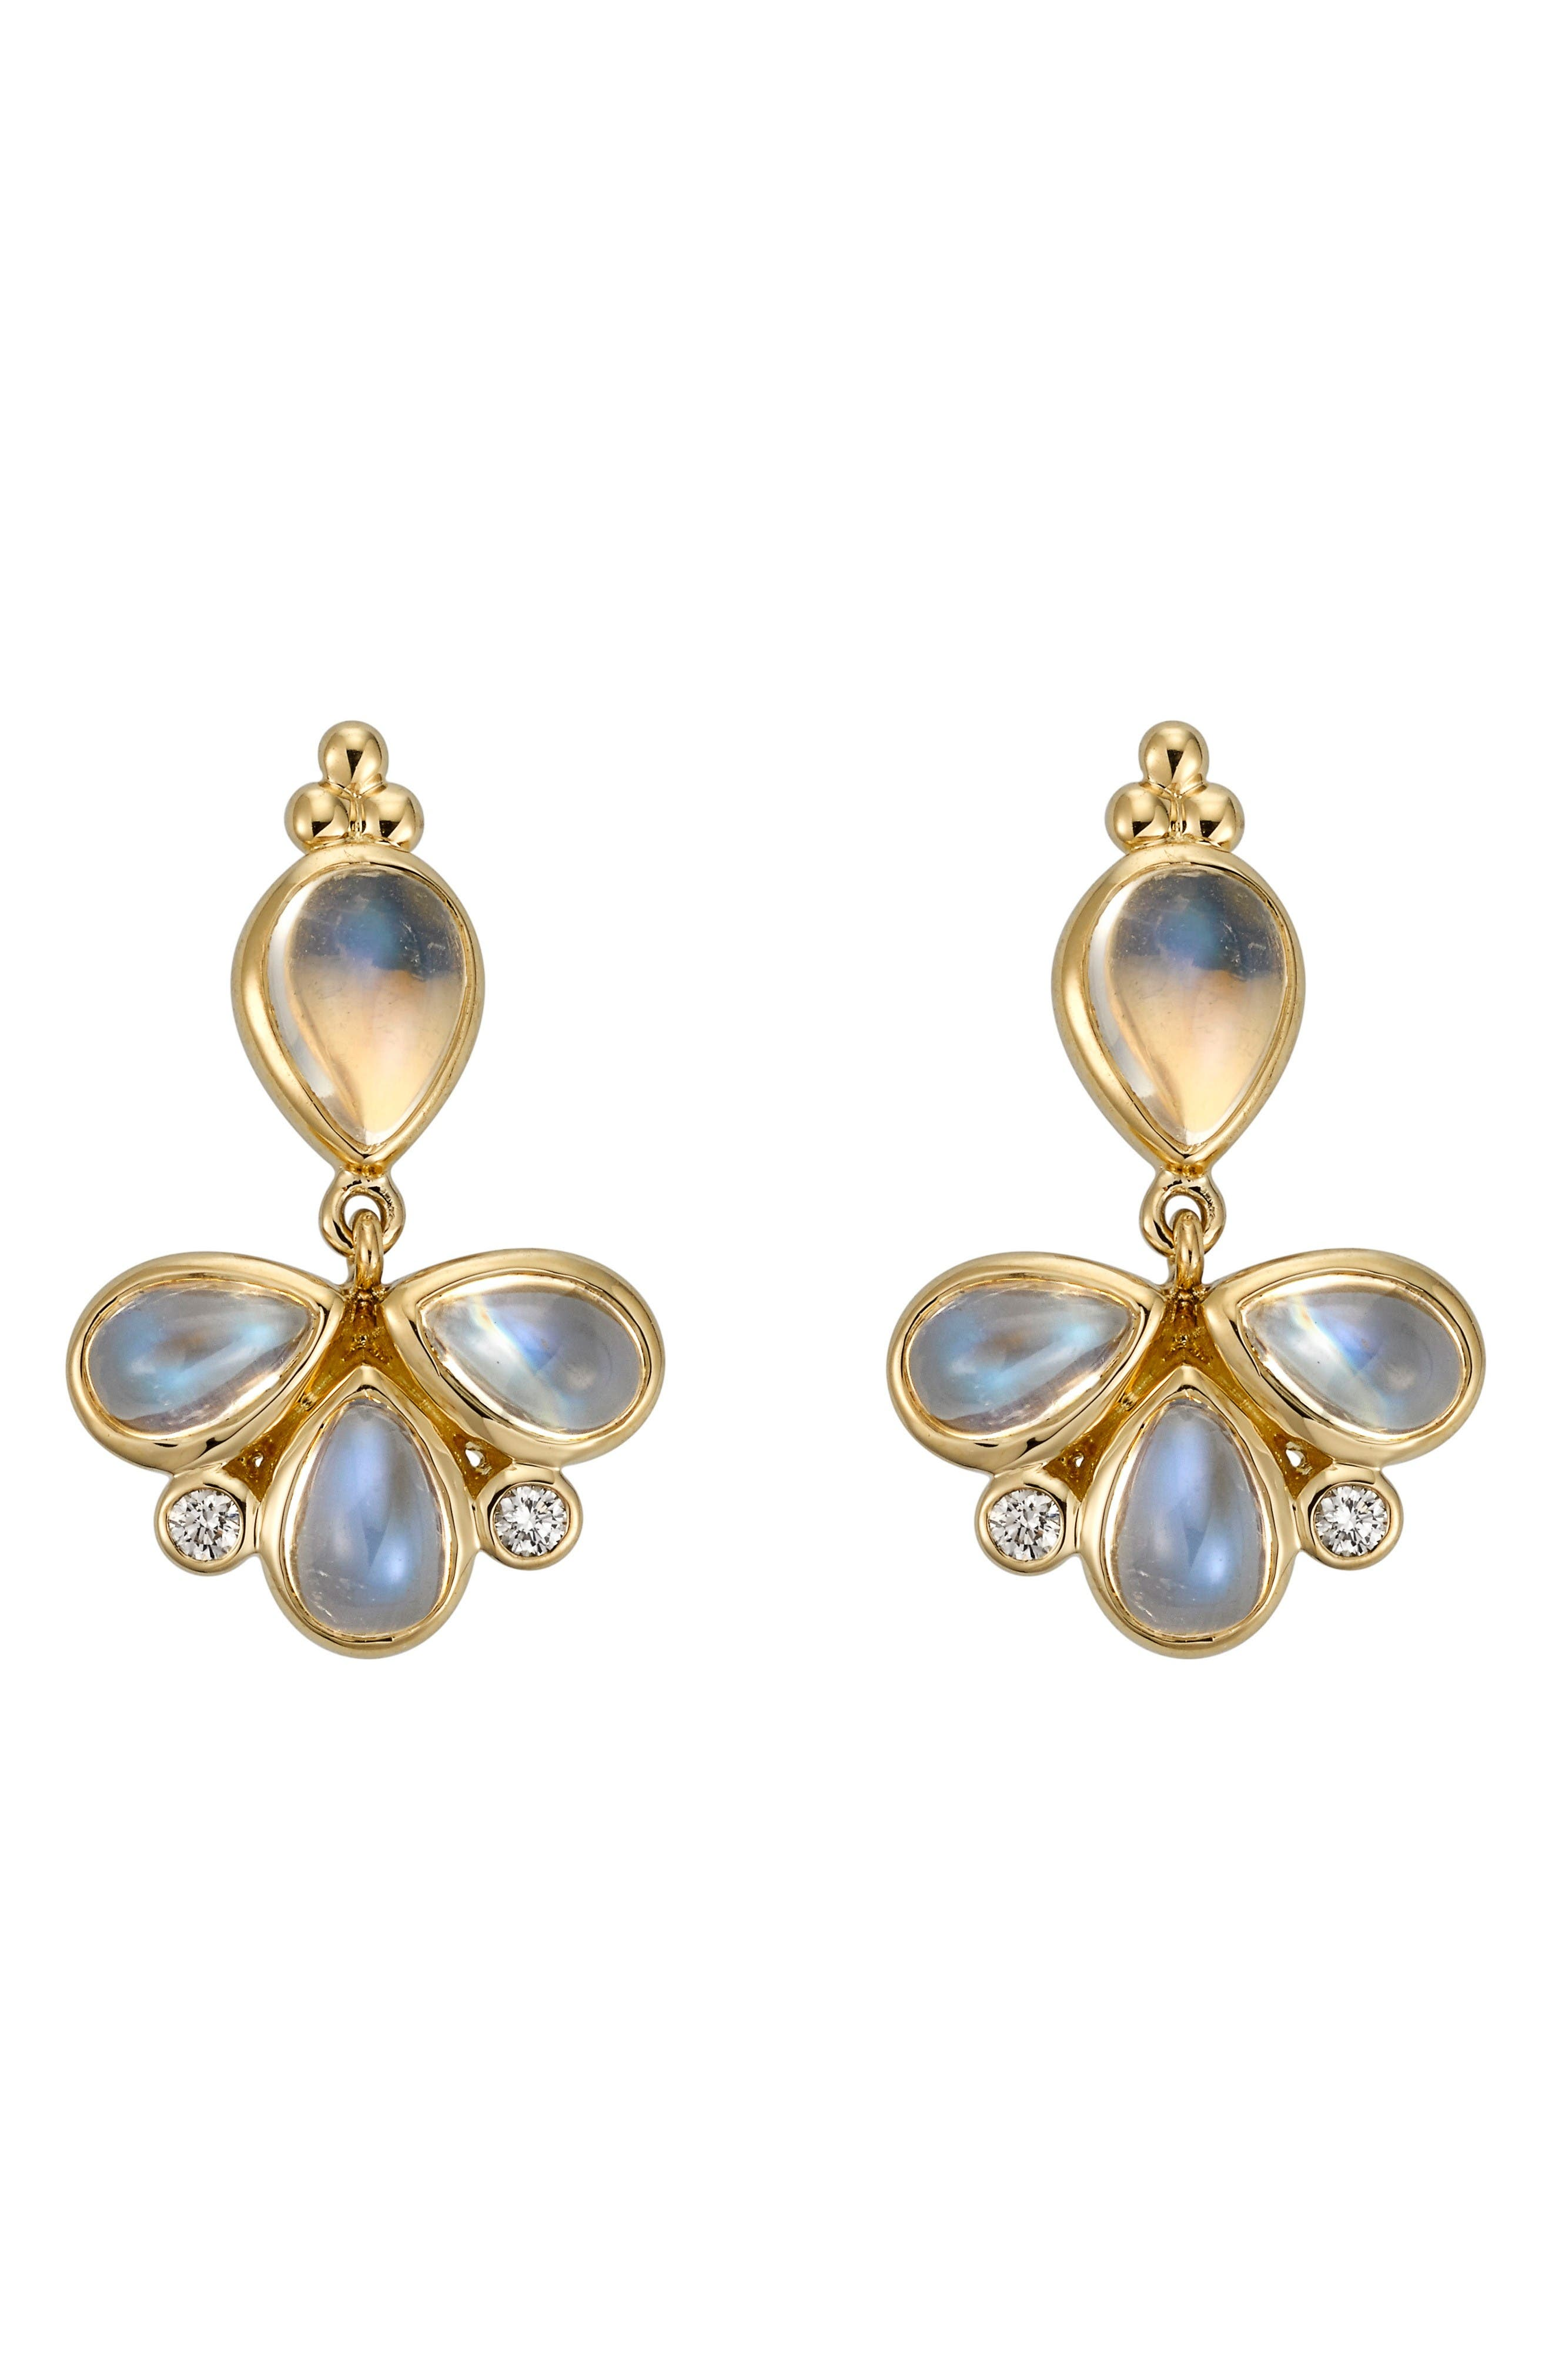 Main Image - Temple St. Clair Royal Blue Moonstone & Diamond Drop Earrings